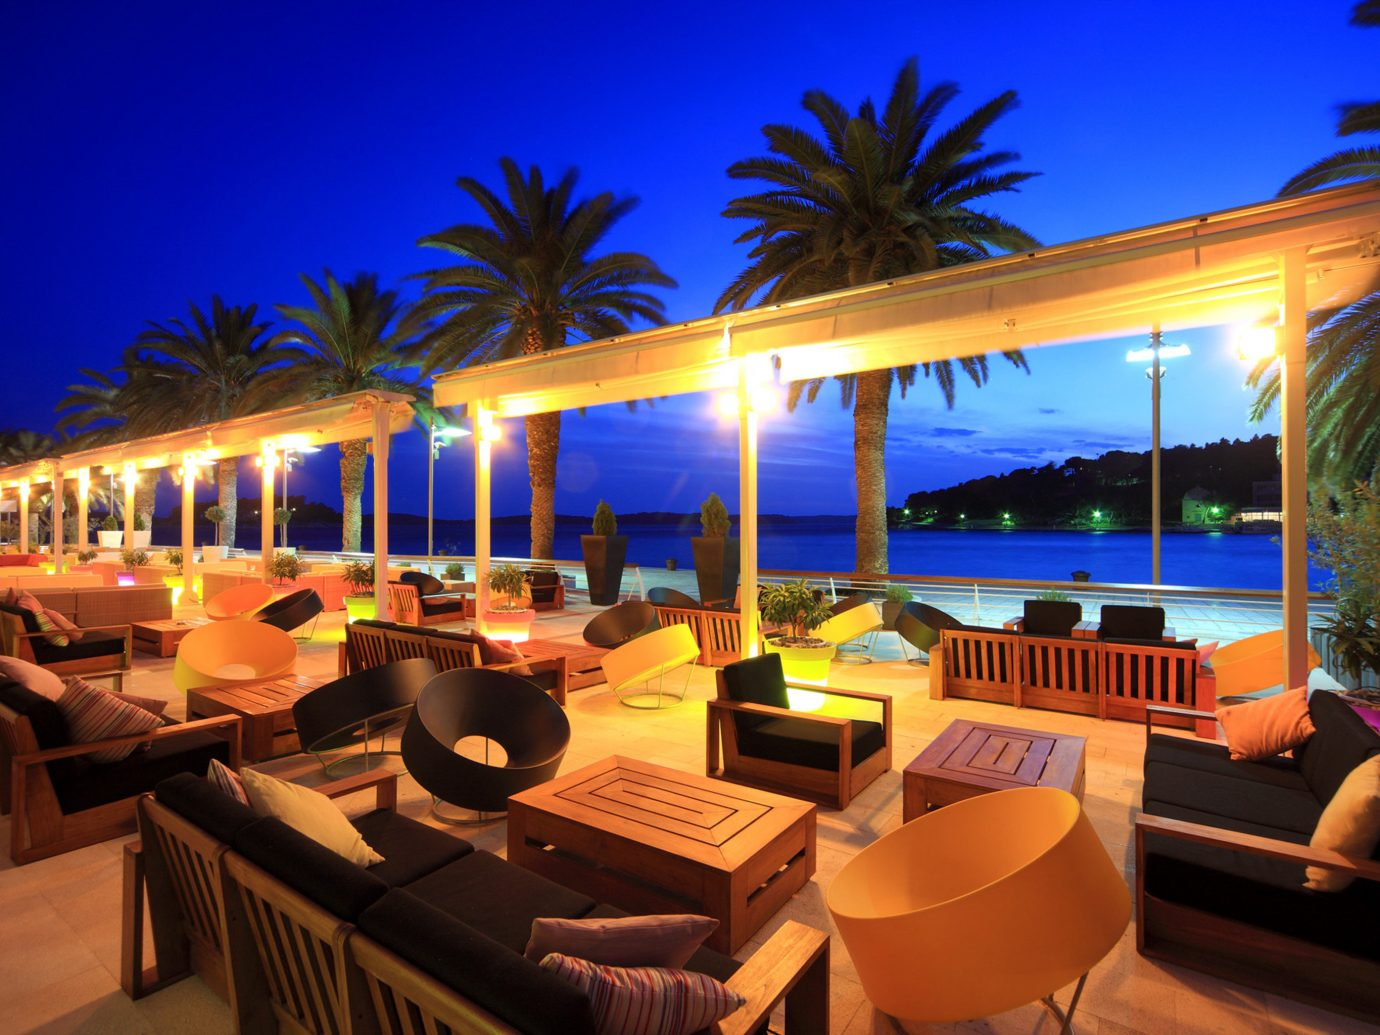 Drink Lounge Nightlife Pool Scenic views Trip Ideas Tropical Resort restaurant vacation estate Villa night